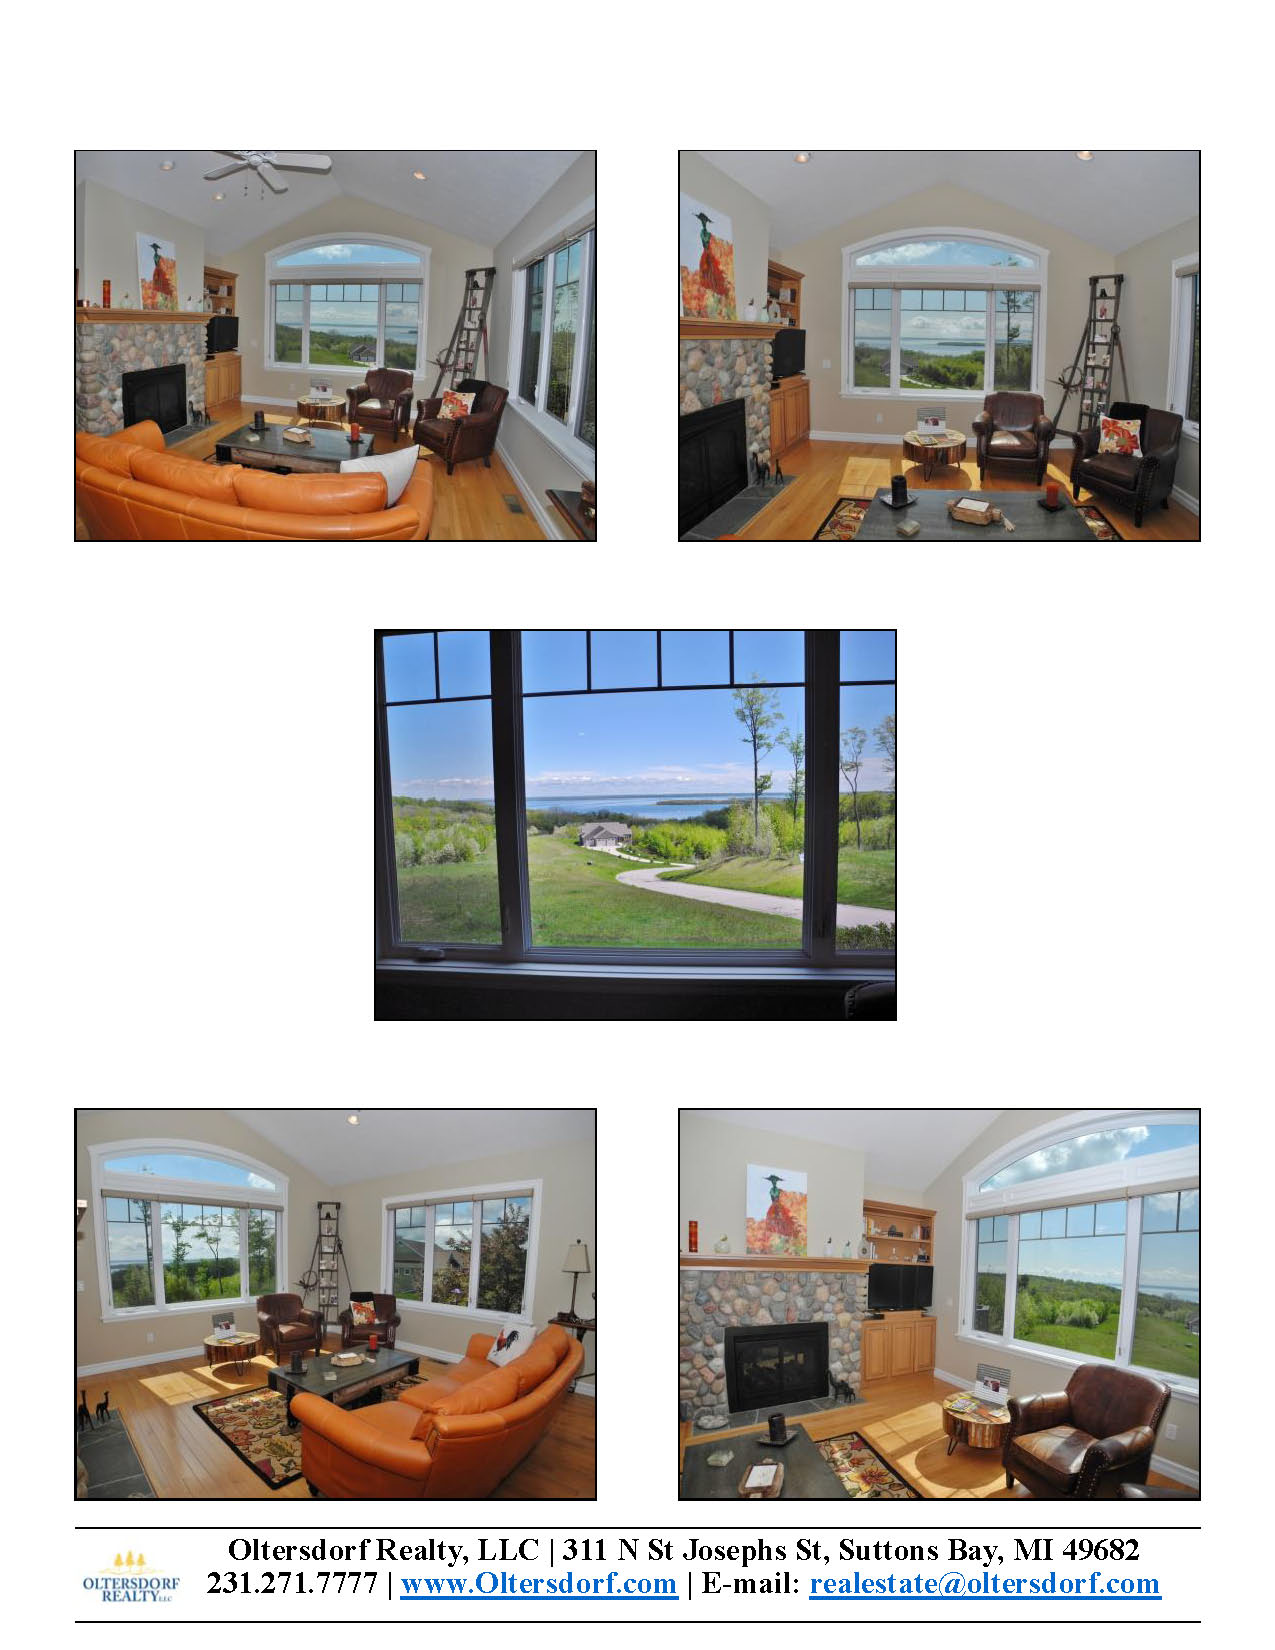 1900 N Blue Water Ct, Suttons Bay, MI – Ranch Home & Water Views - Marketing PAcket by Oltersdorf Realty LLC (4).jpg